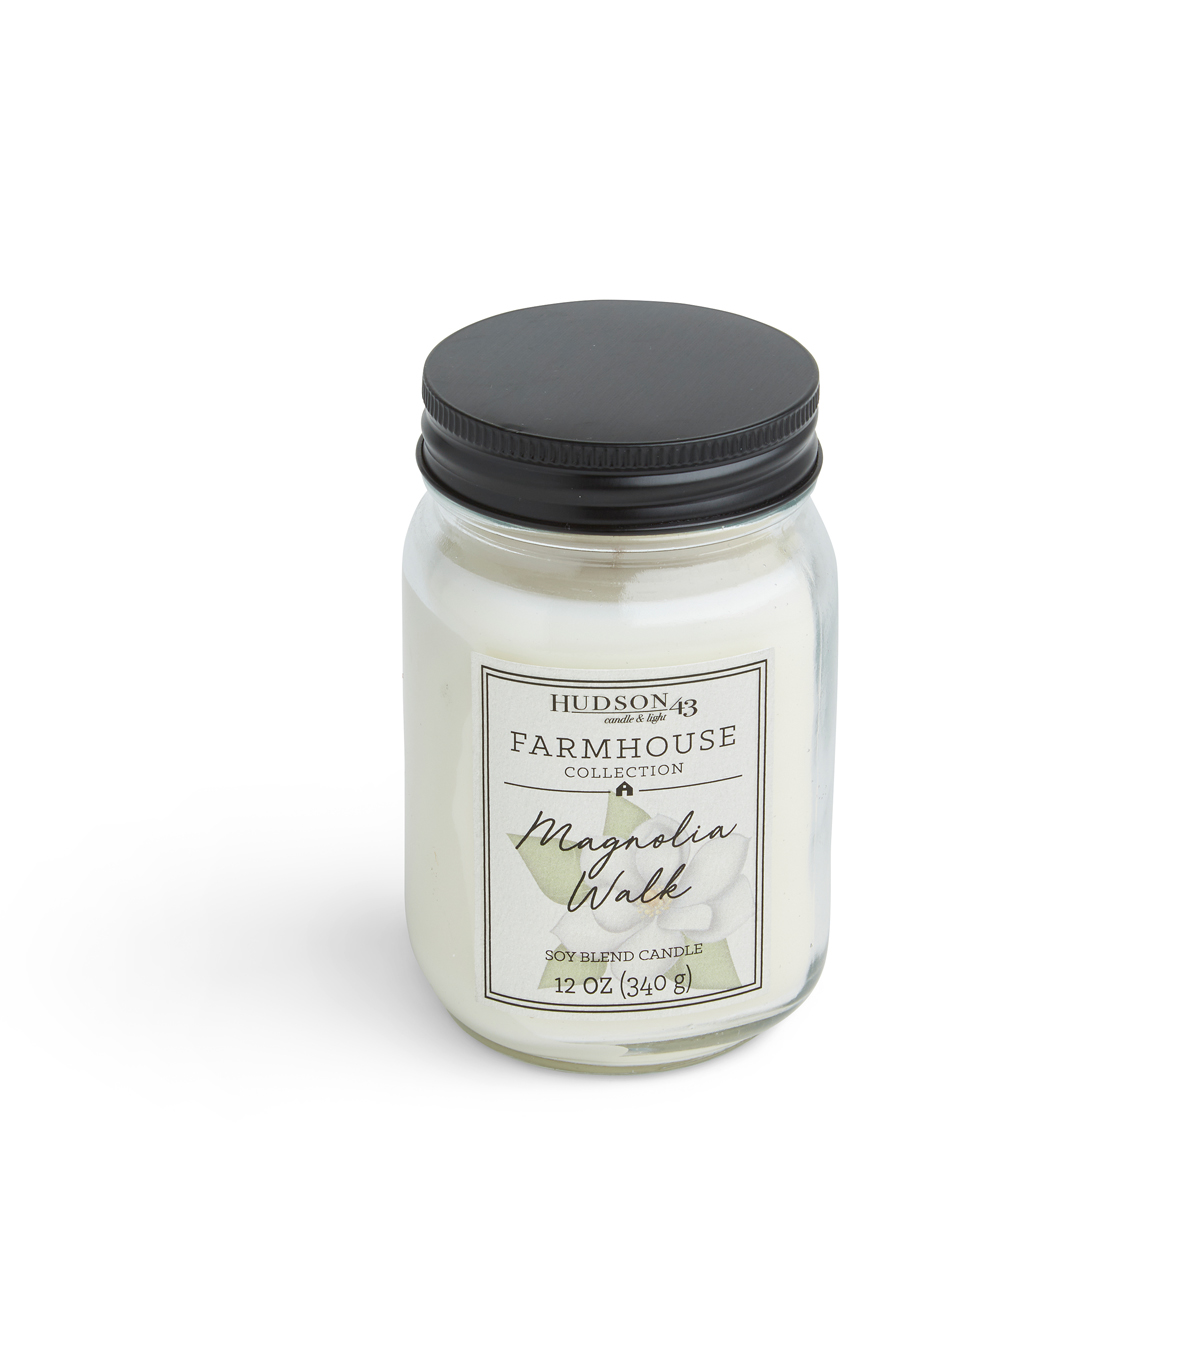 Hudson 43 Farmhouse Collection 12 oz. Magnolia Walk Mason Jar Candle